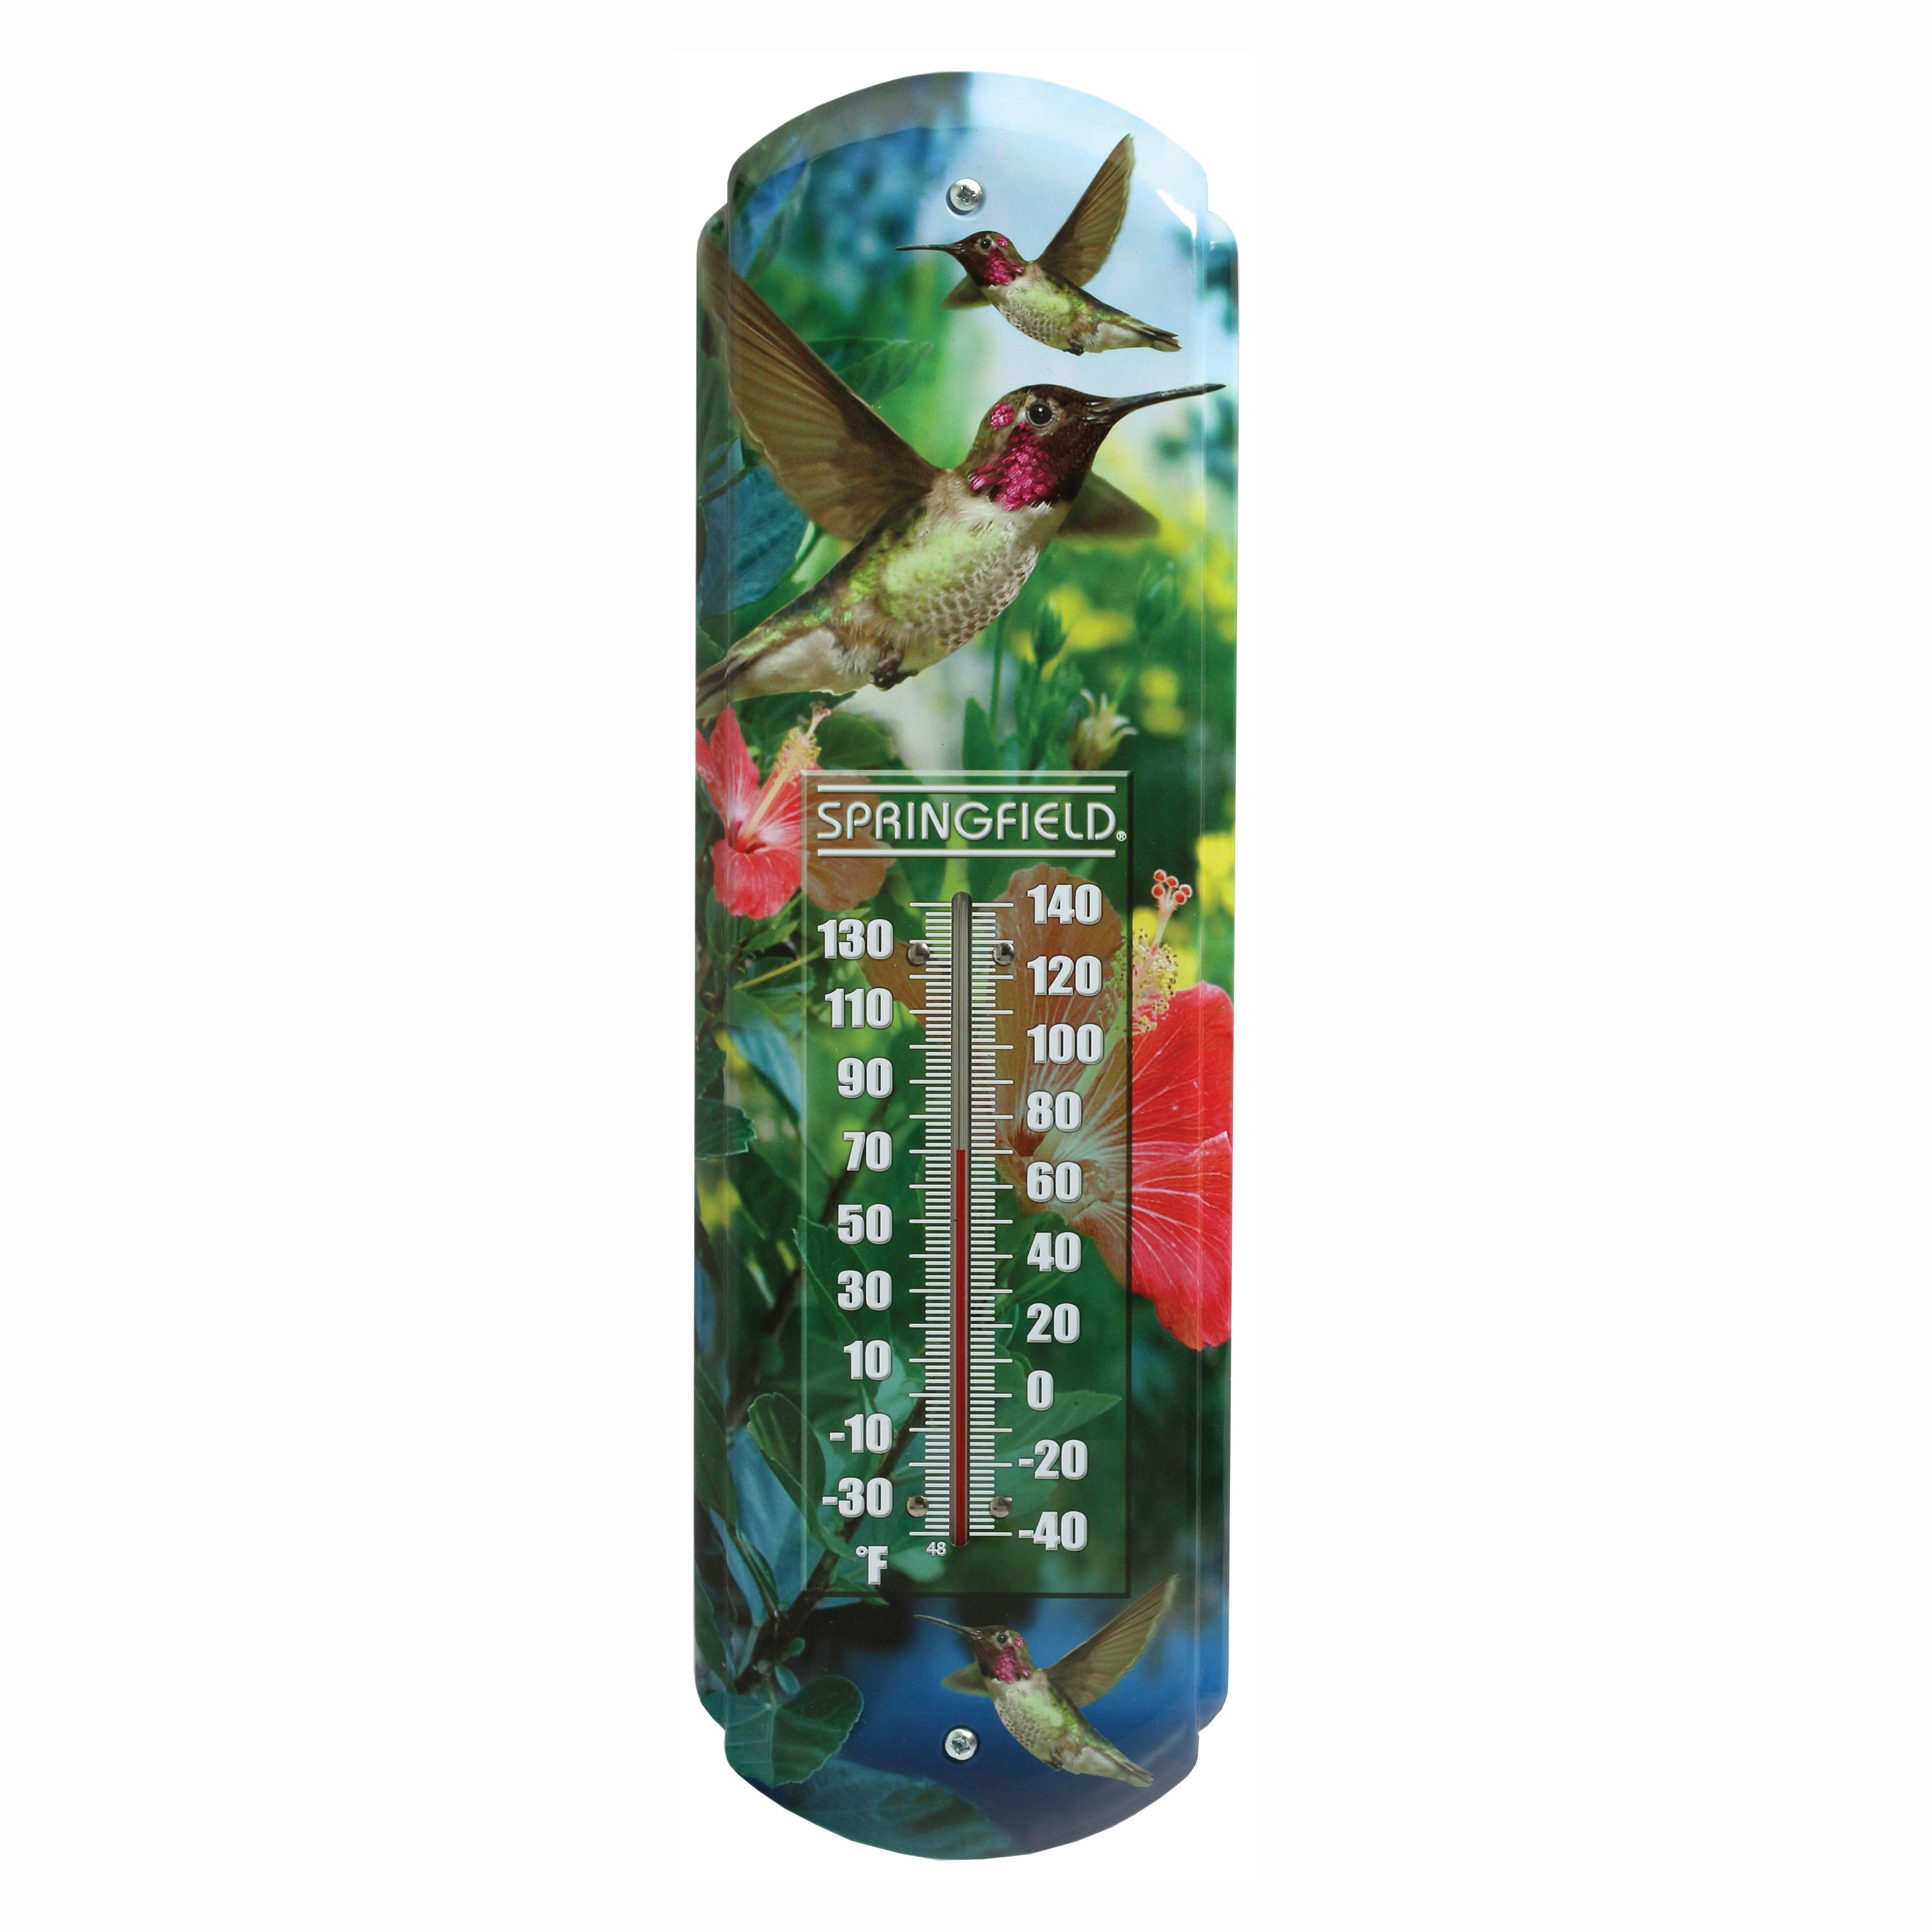 Picture of Taylor 98218 Thermometer, -40 to 140 deg F, Metal Casing